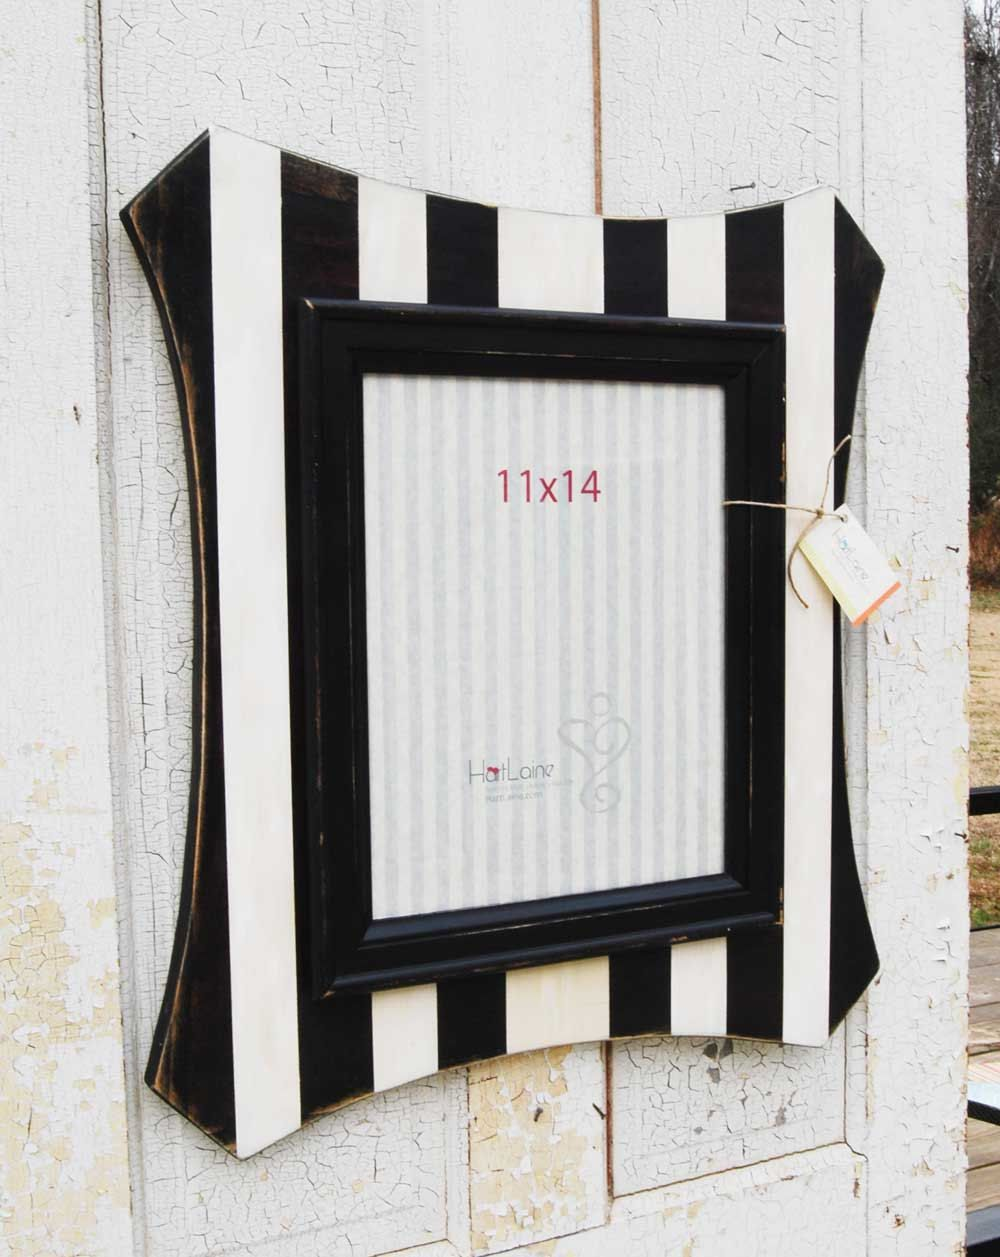 11x14 Striped Picture Frame - Black and White Vertical Stripes ...